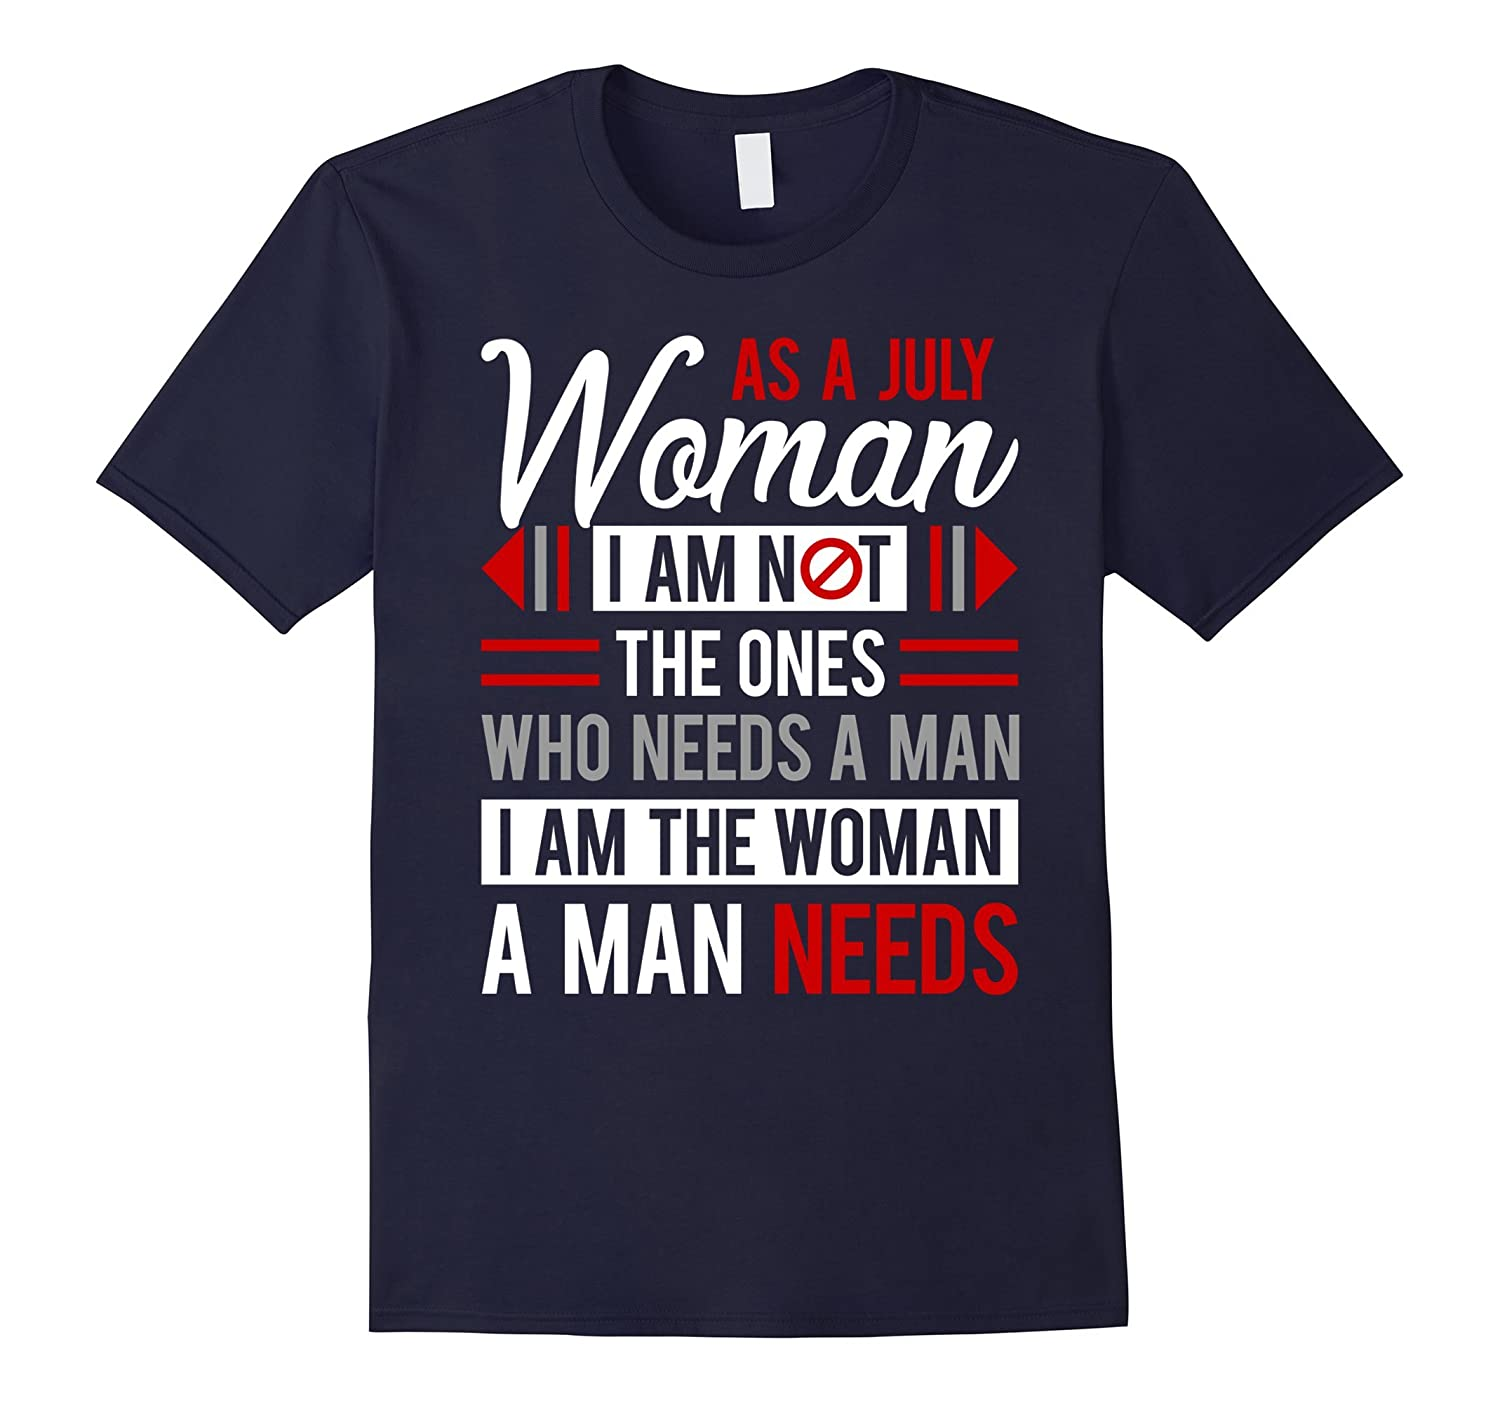 As A July Woman I Am Not The Ones Who Need A Man T-Shirt-Rose